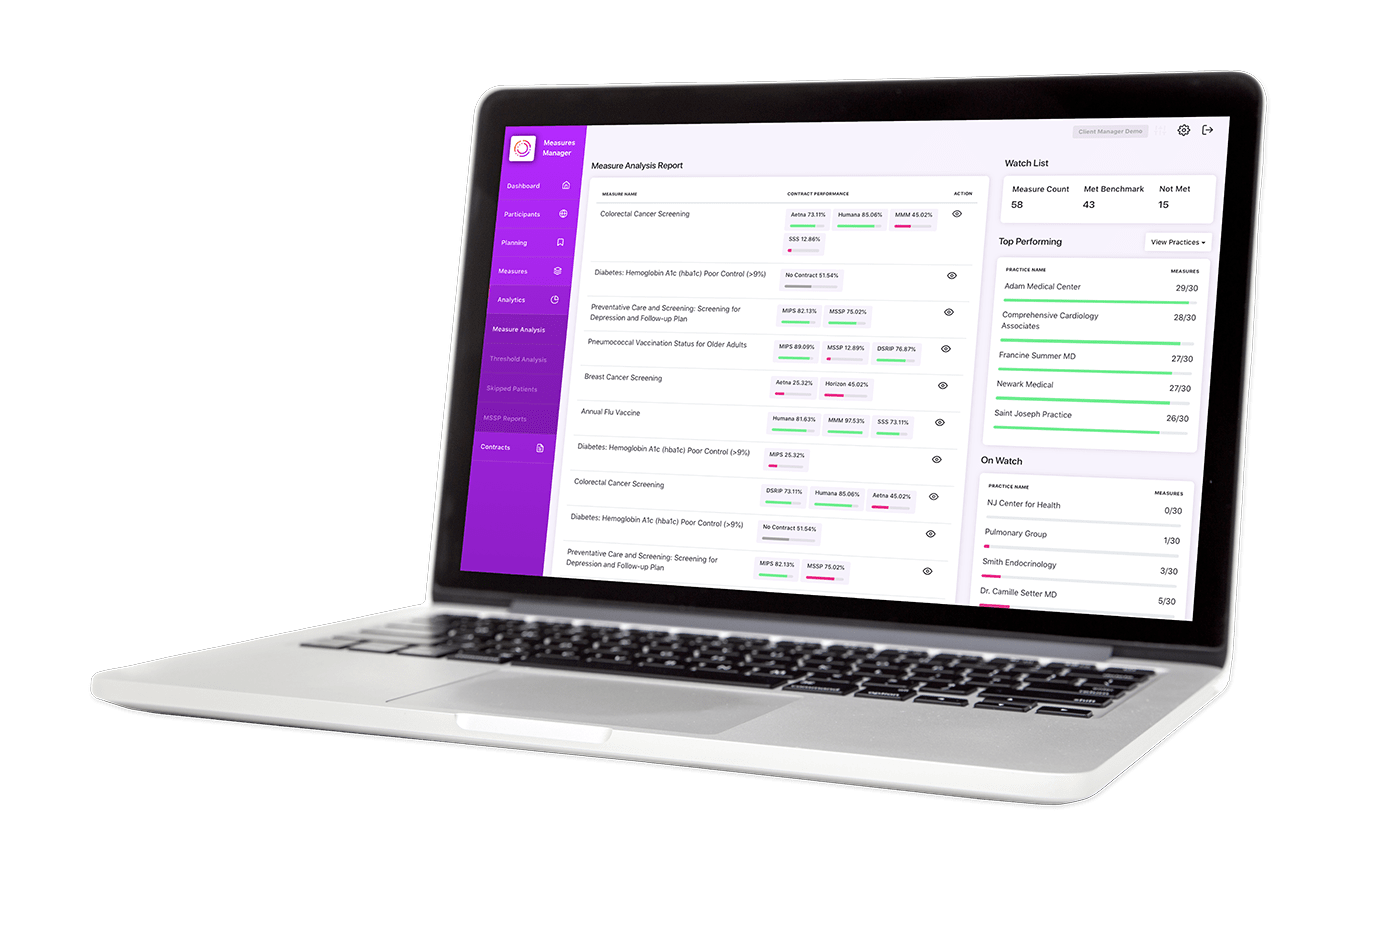 value-based care platform